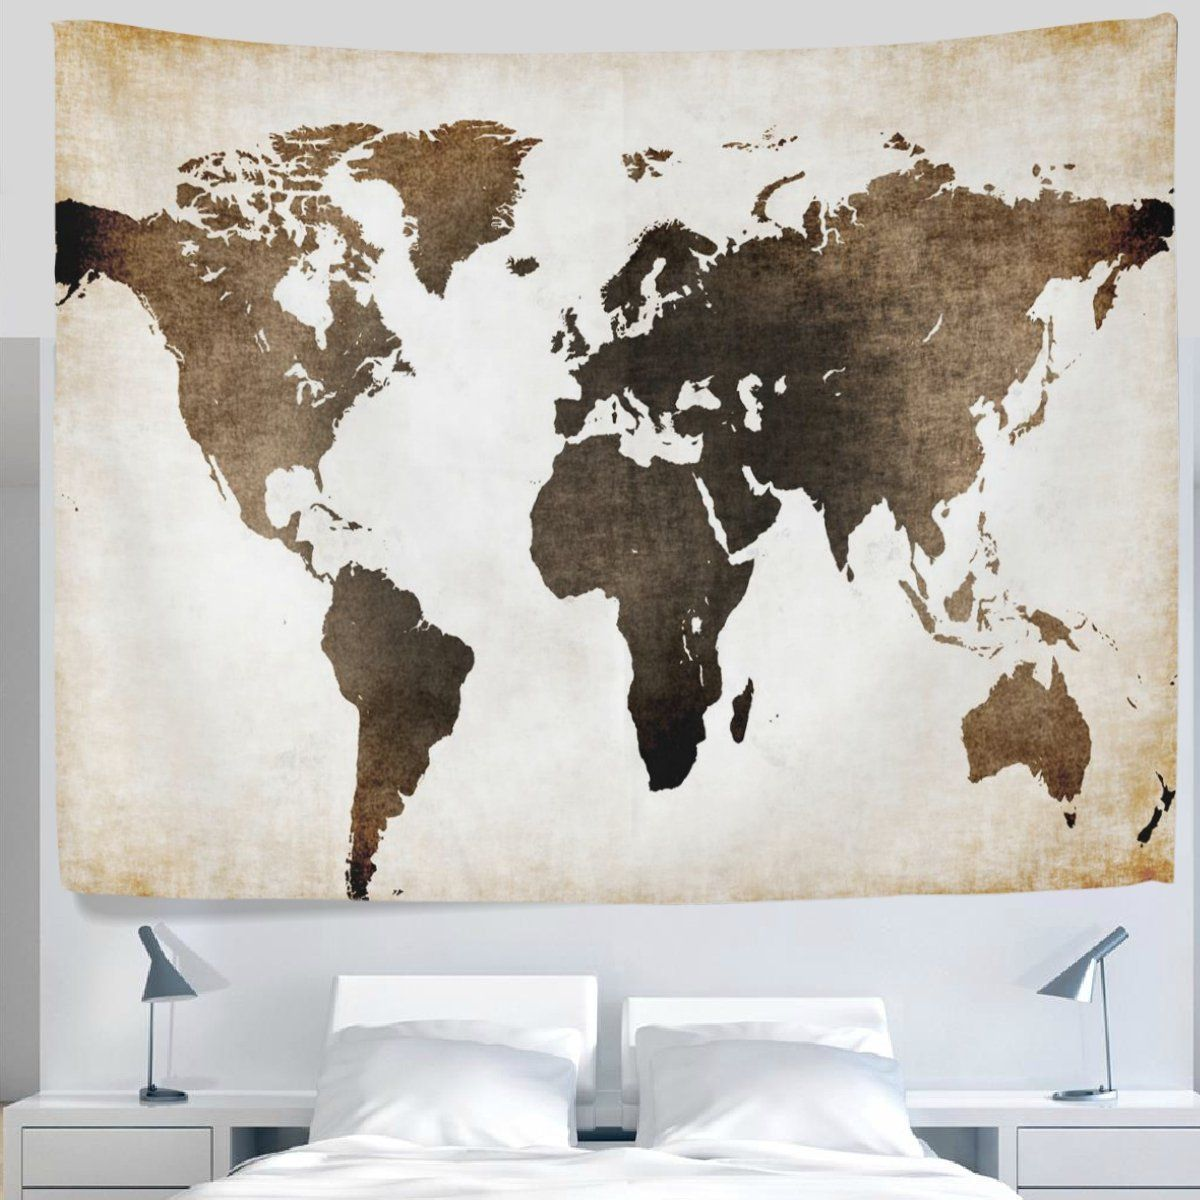 Alaza antique old fashioned retro vintage world map tapestry wall alaza antique old fashioned retro vintage world map tapestry wall hanging decor light weight polyester fabric cottage dorm wall art home decoration 80x60 gumiabroncs Images